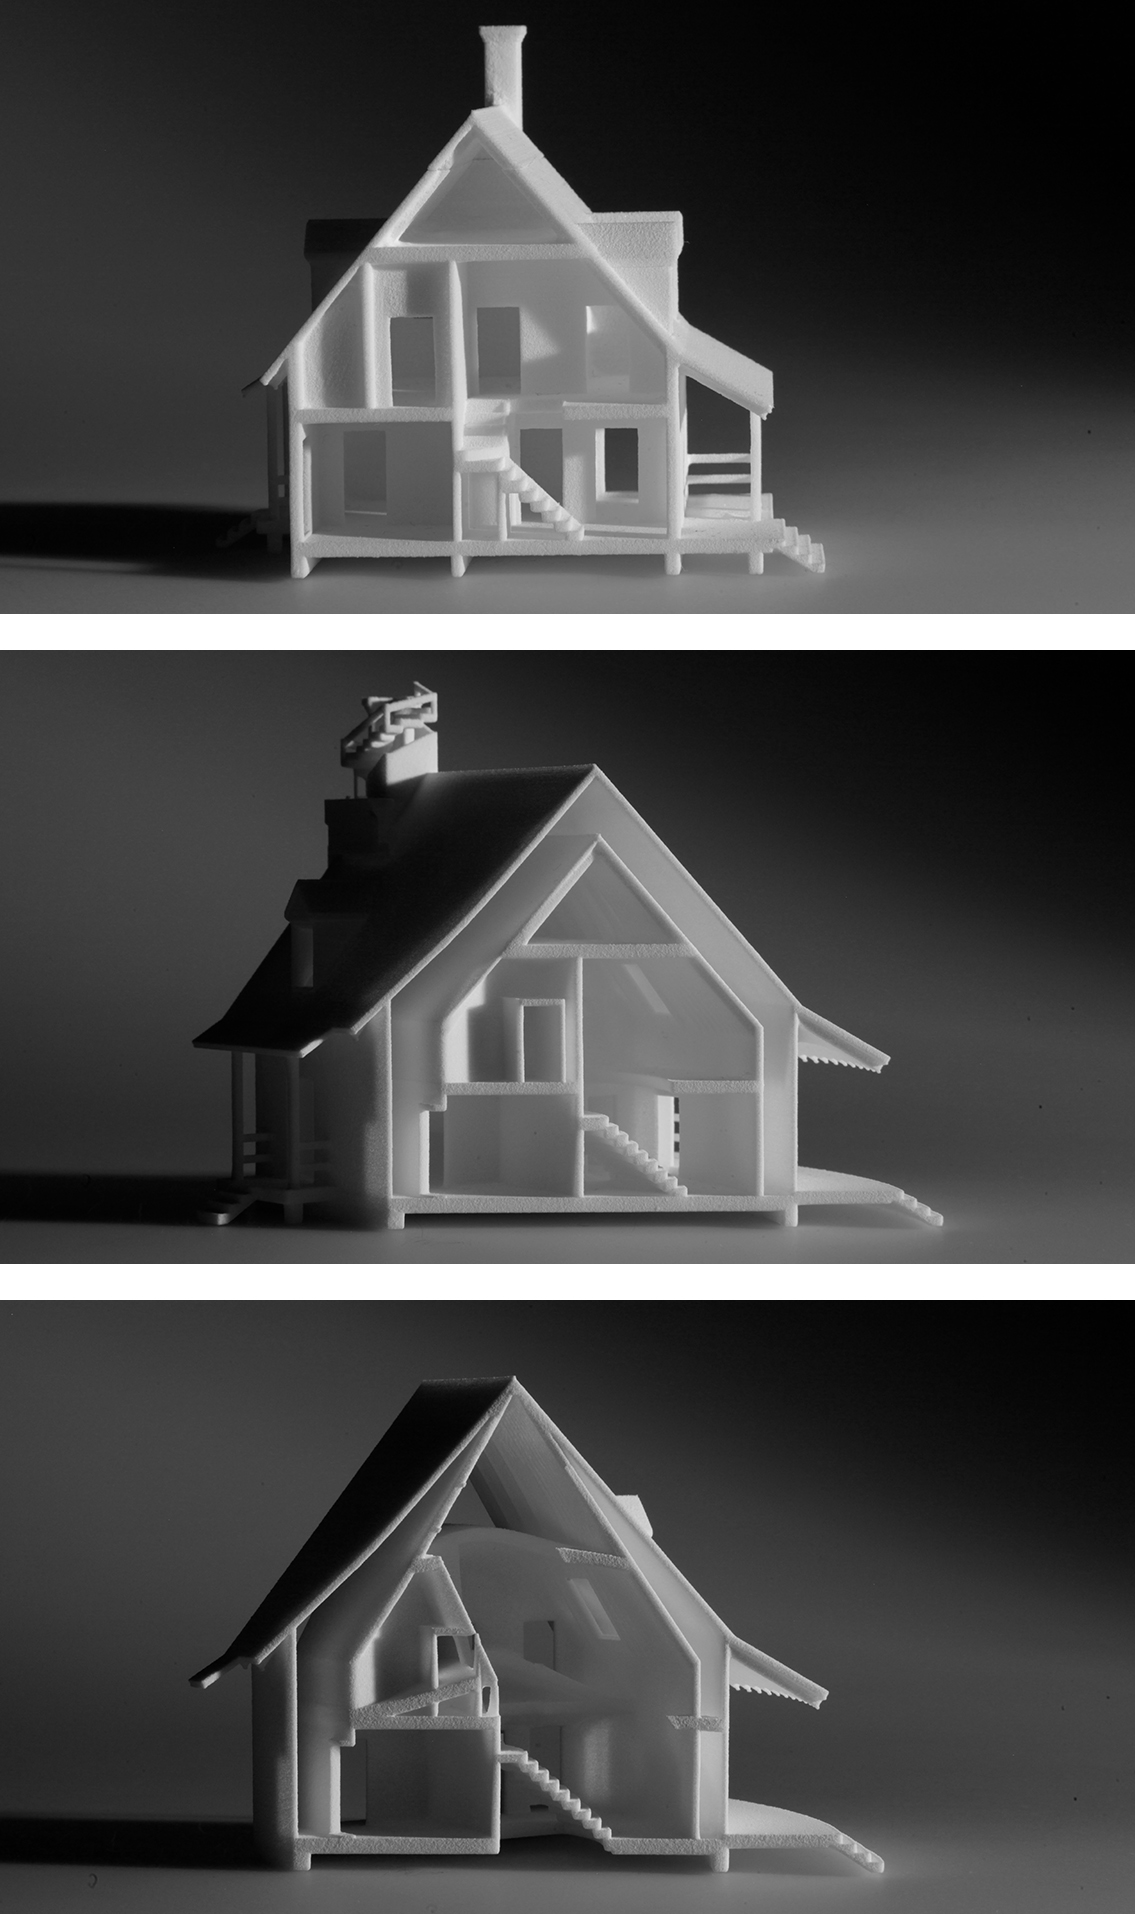 3D Printed House Developments - House of Leaves - Space and Paper